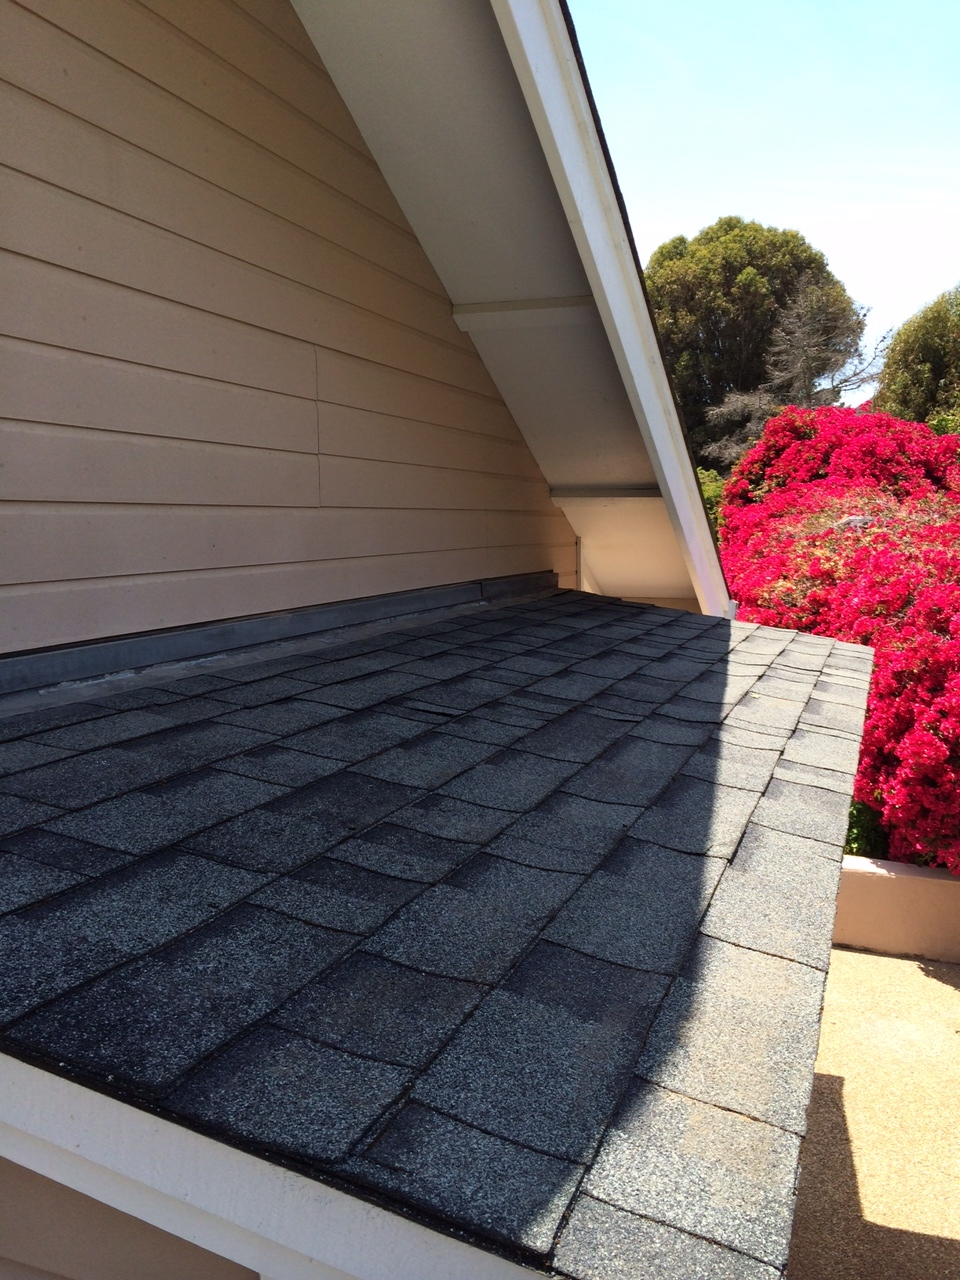 Roof after